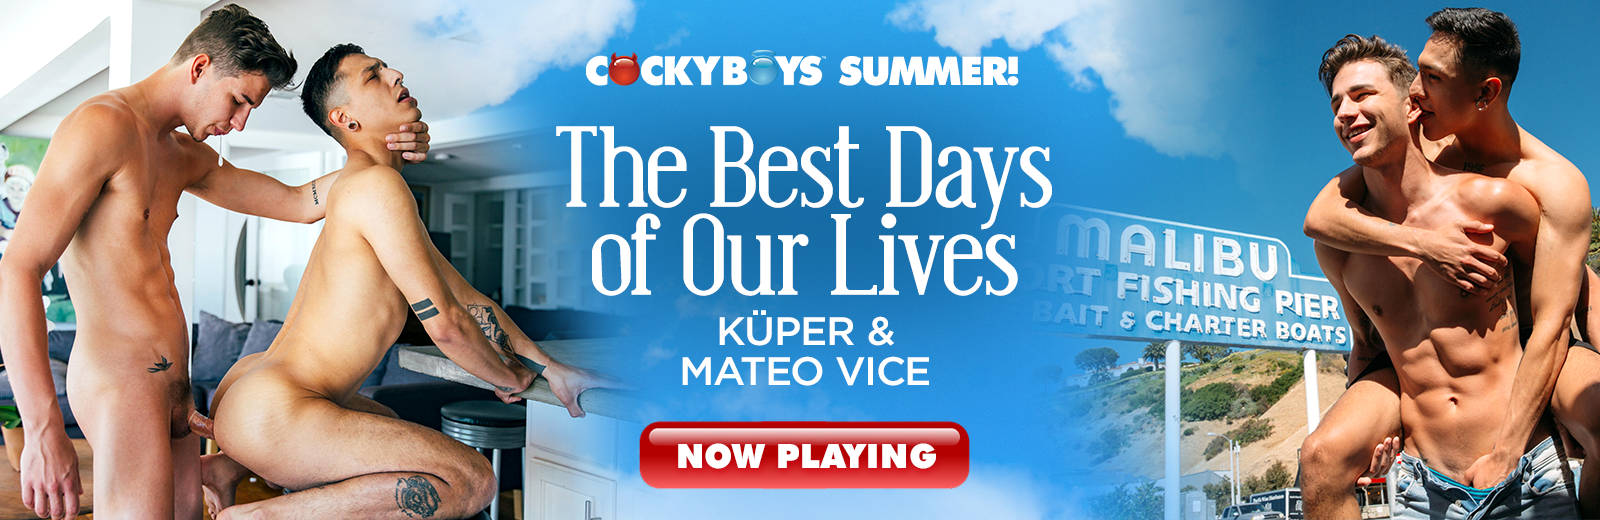 CockyBoys - The Best Days of Our Live - Kuper & Mateo Vice